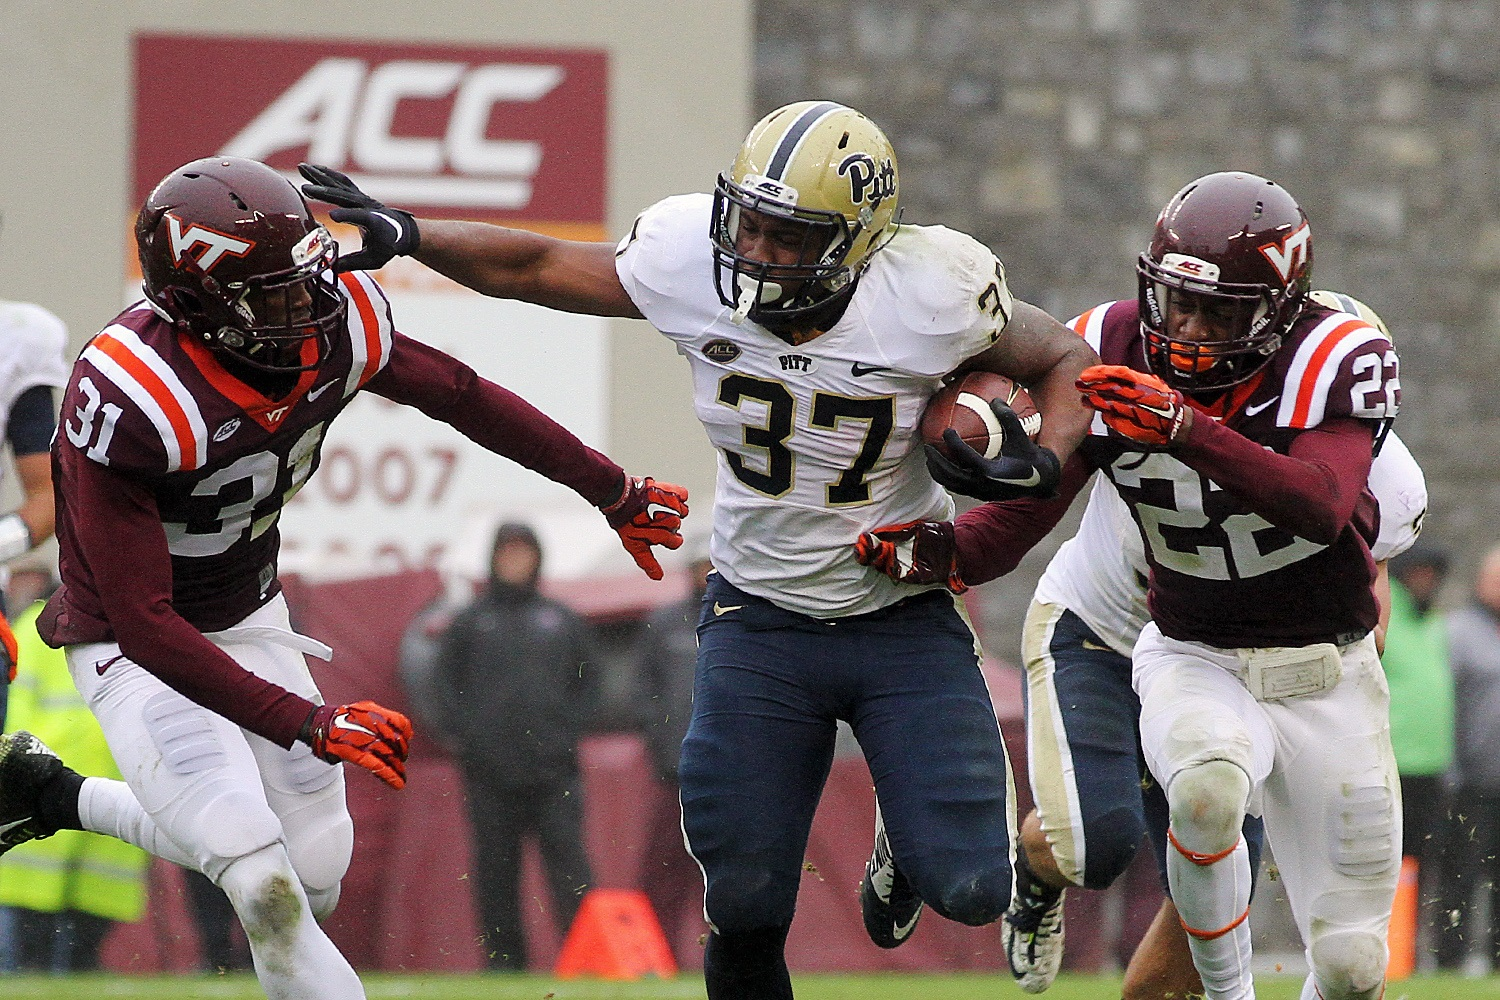 Pitt's Qadree Ollison rumbles for yardage.